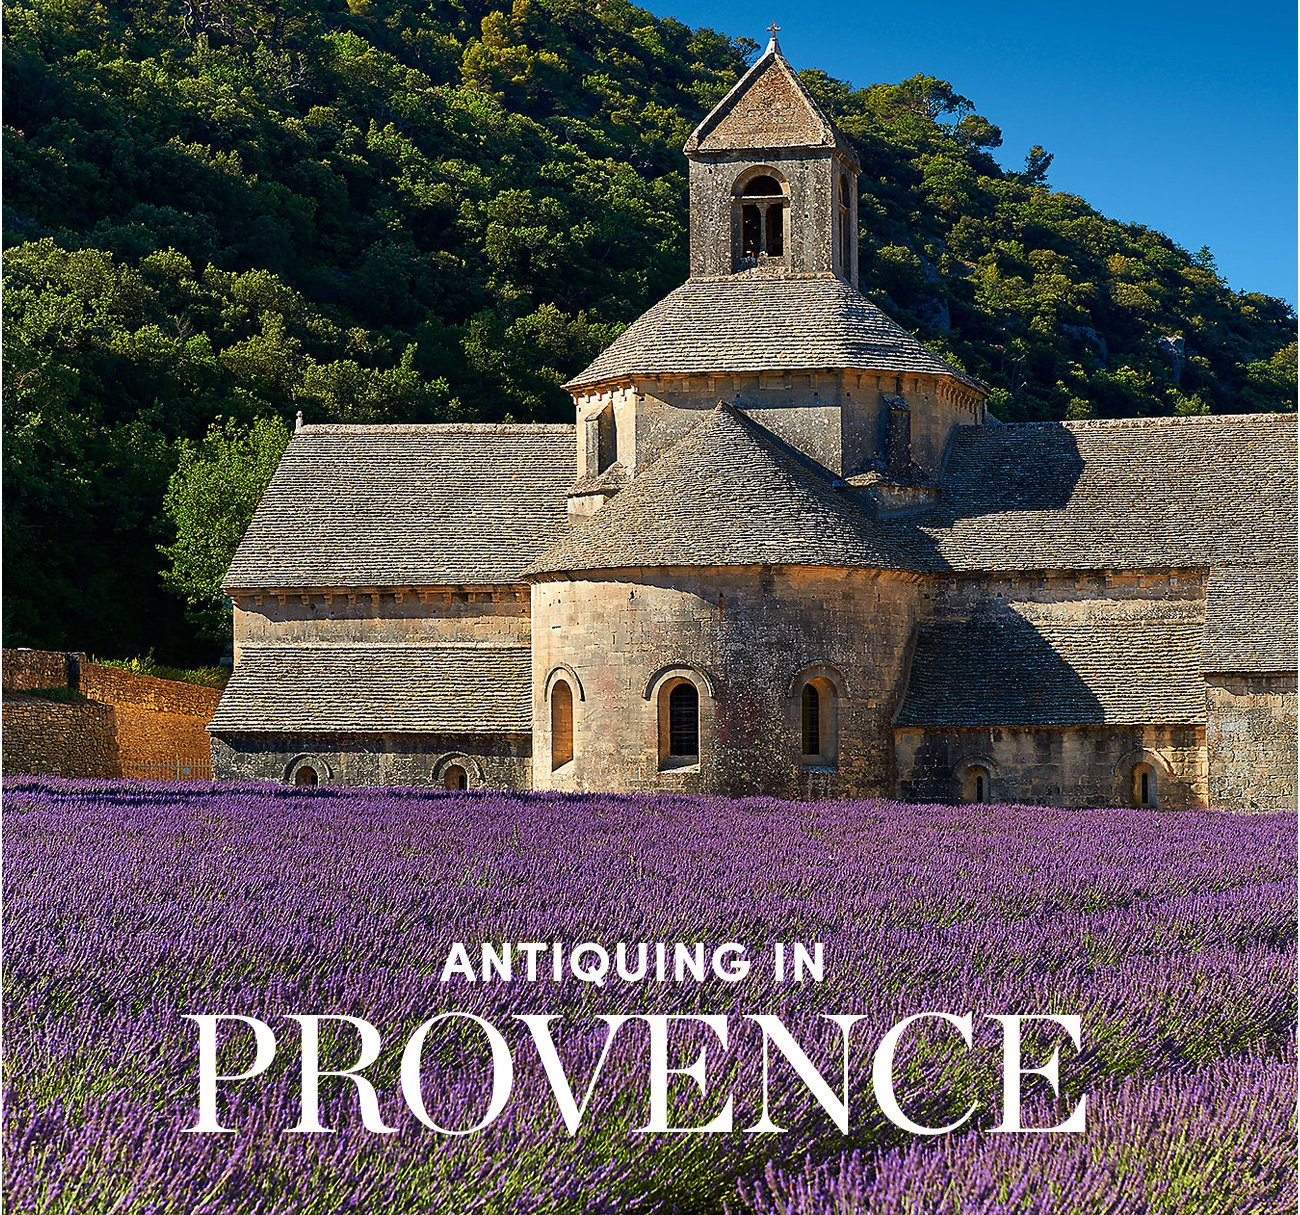 Antiquing in Provence